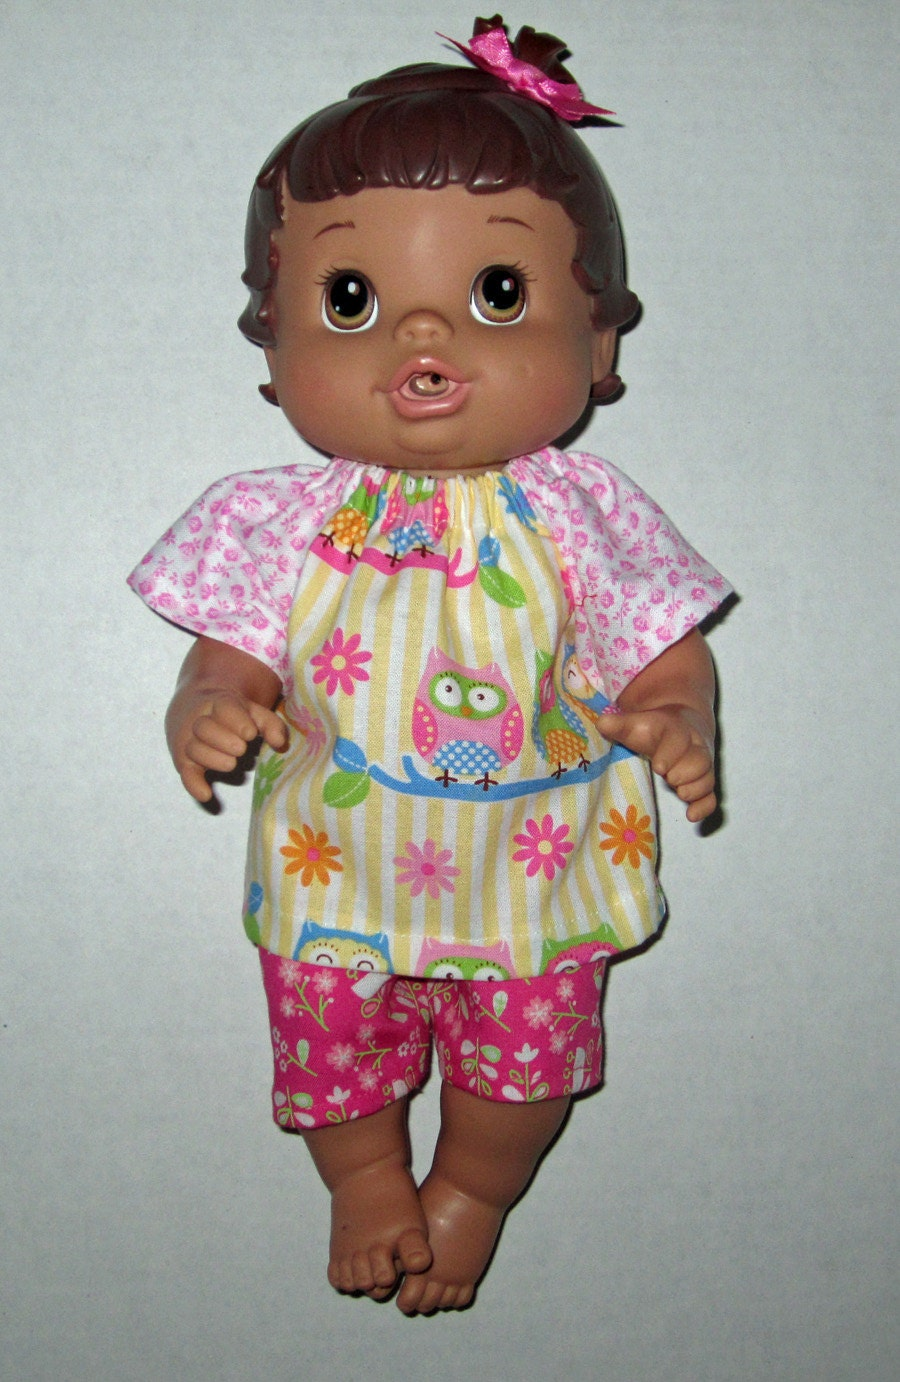 Corolle Tidoo Corolle Calin Doll Clothes Baby Alive All